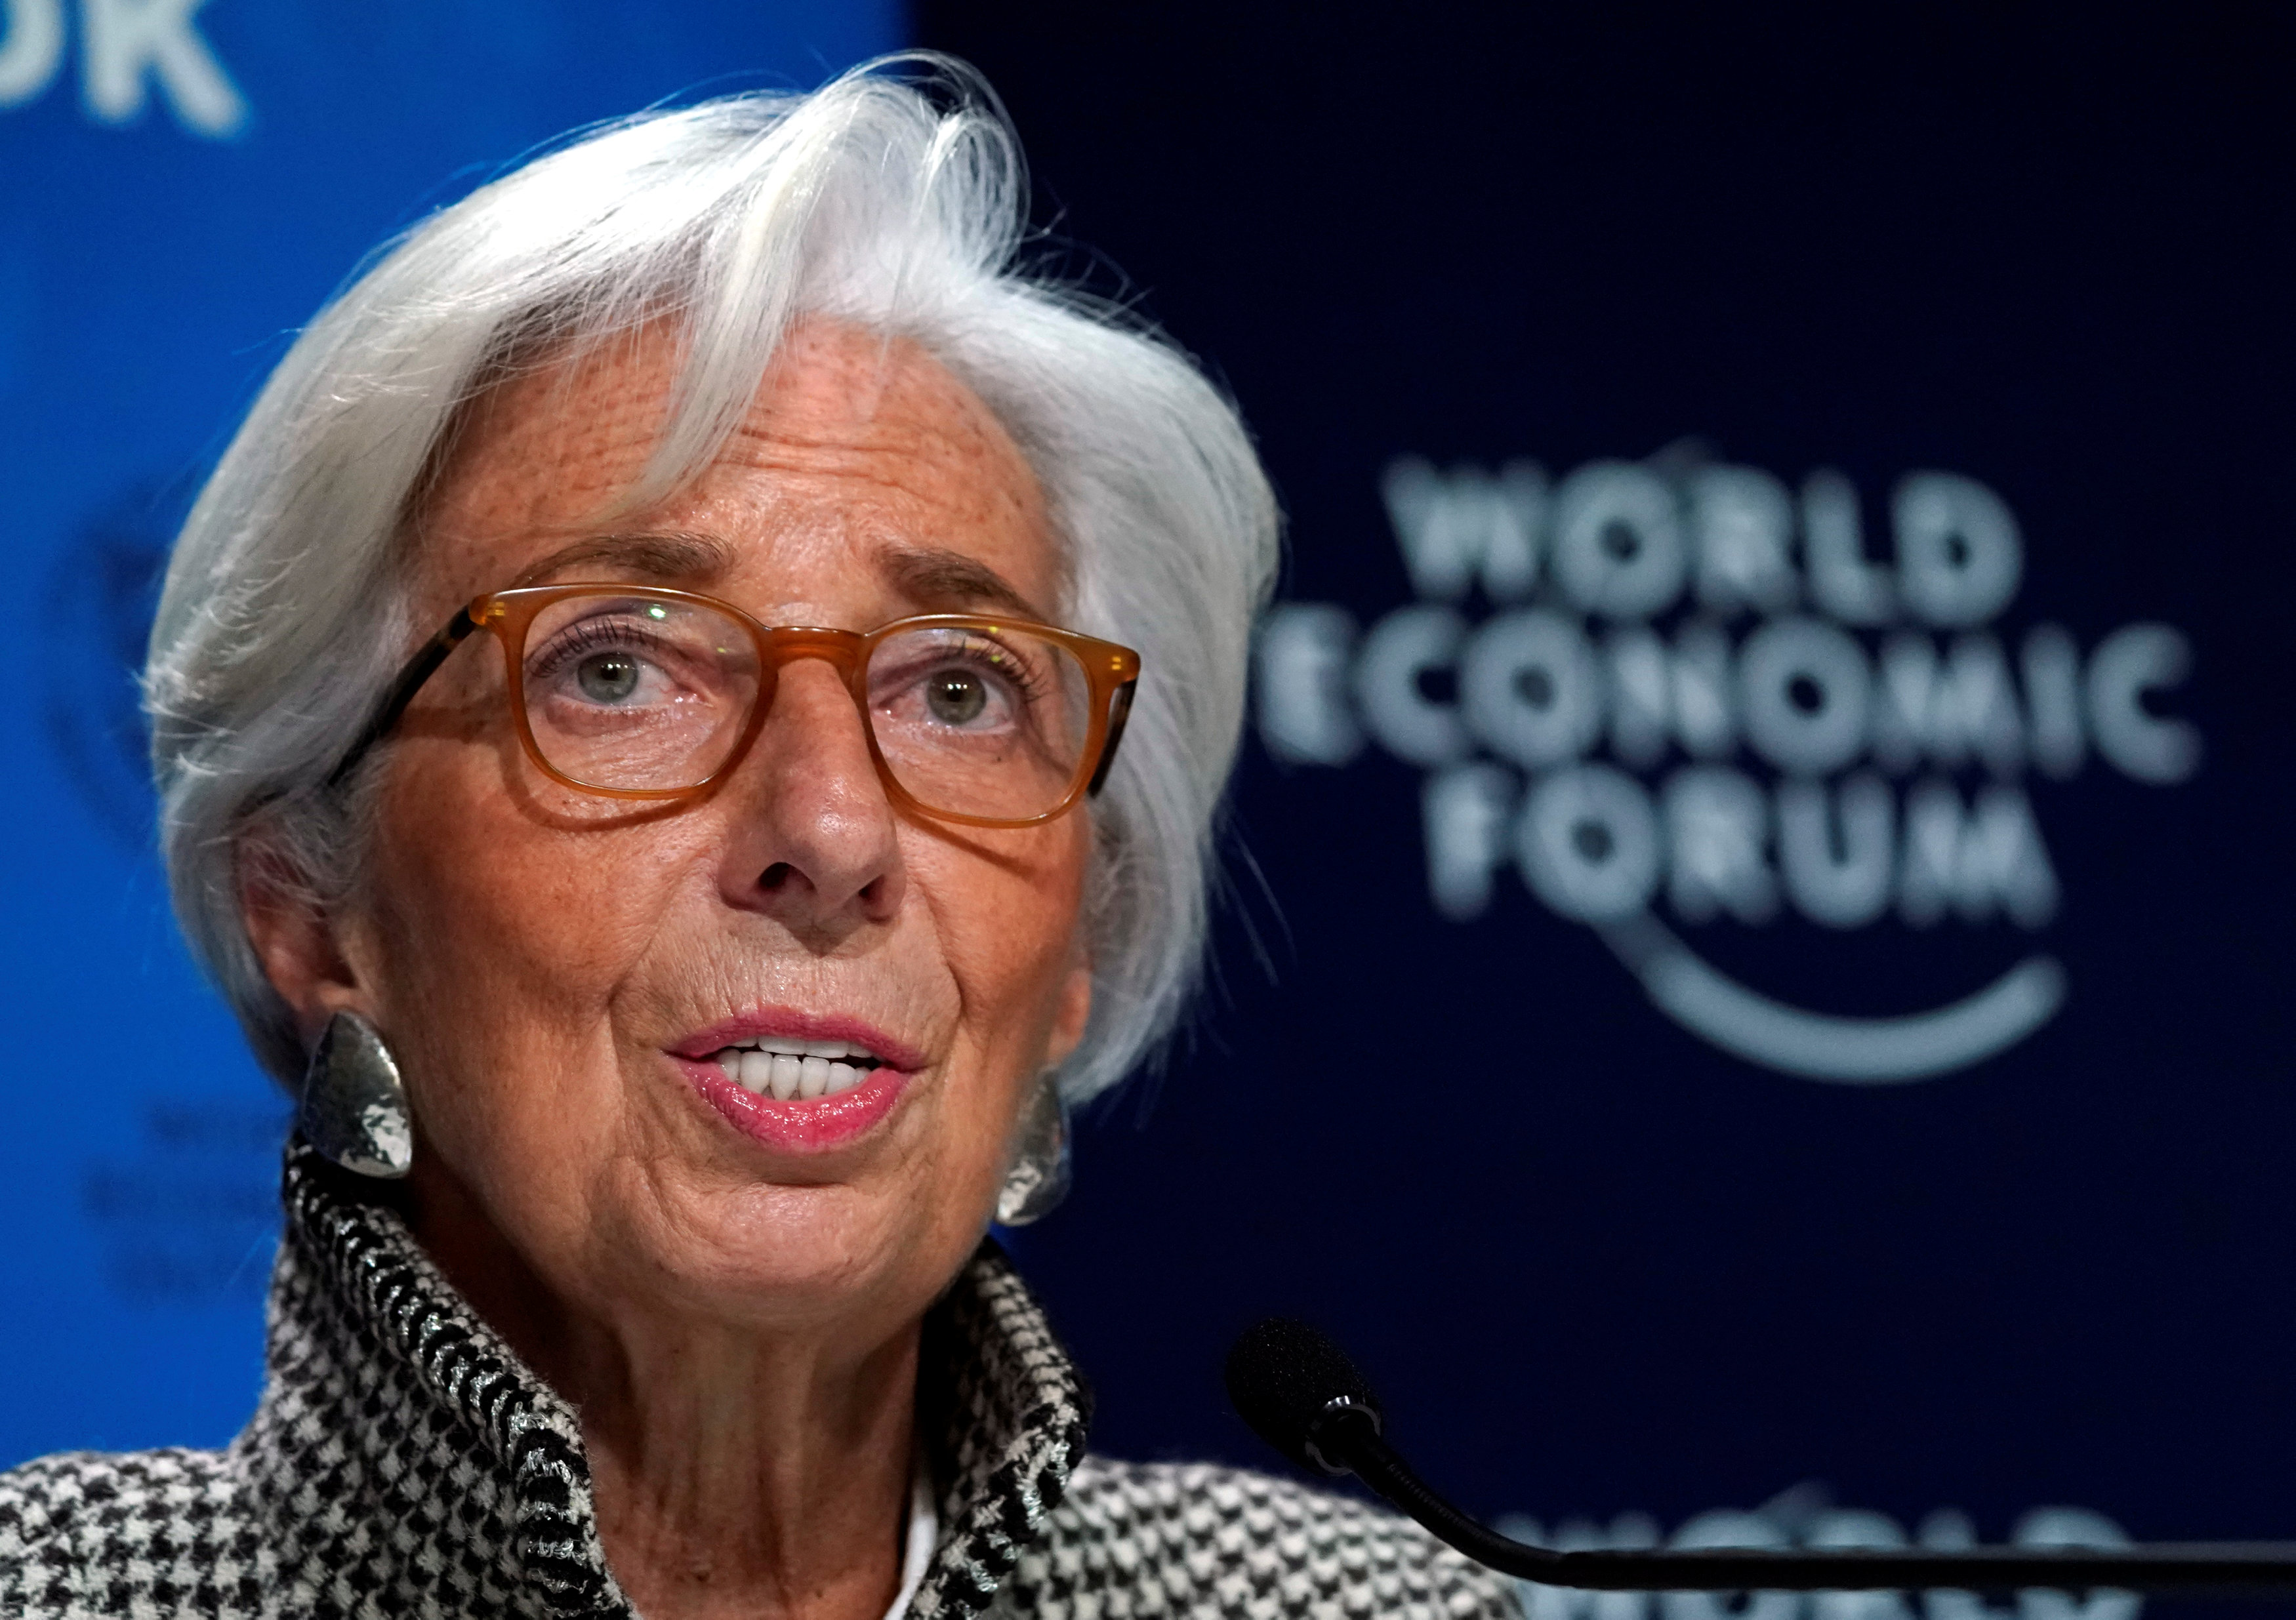 Trade conflicts dimming global growth outlook: IMF